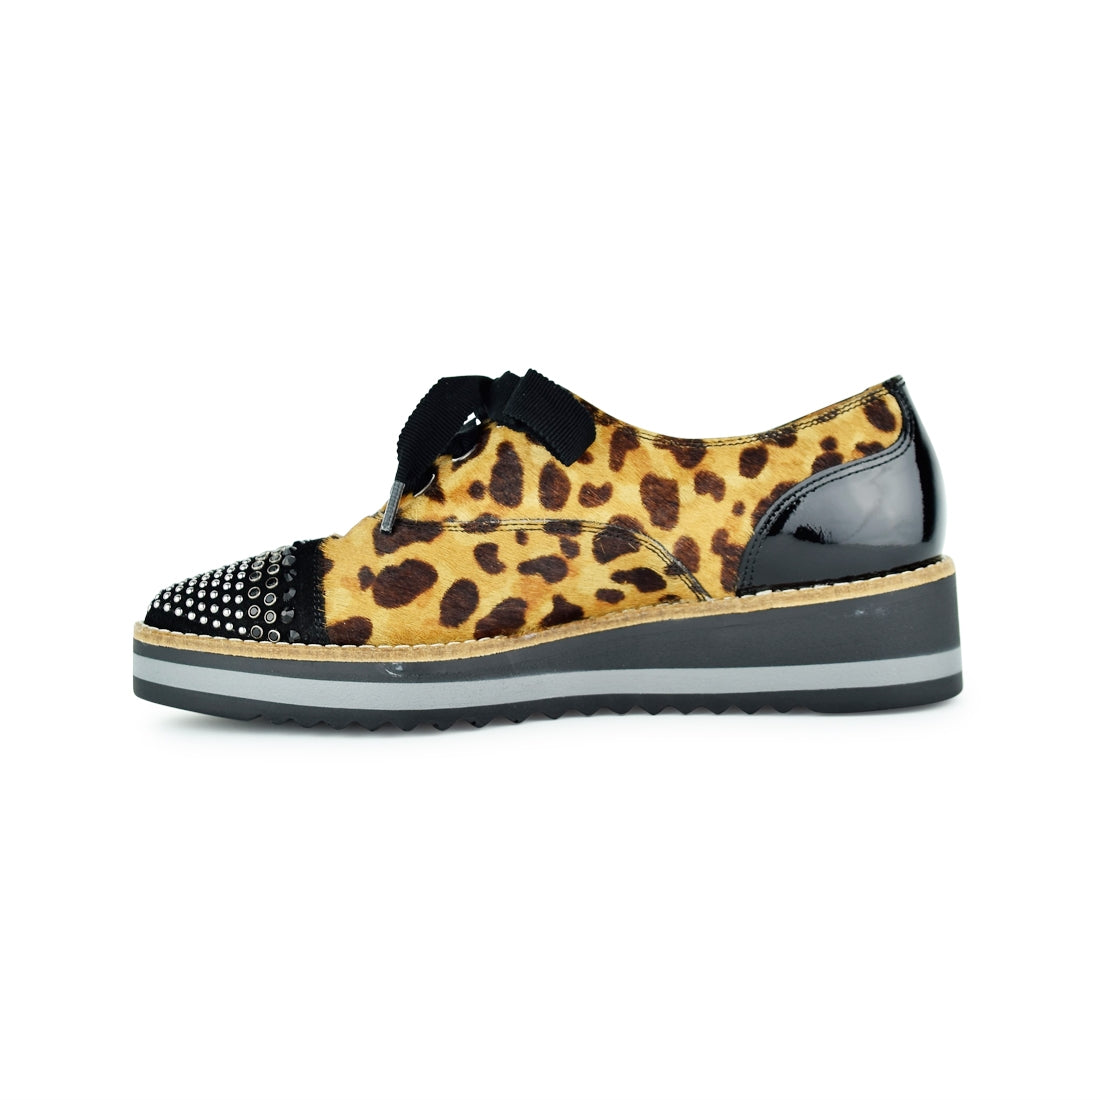 RAYO - Dansi Lace Up Leopard Print